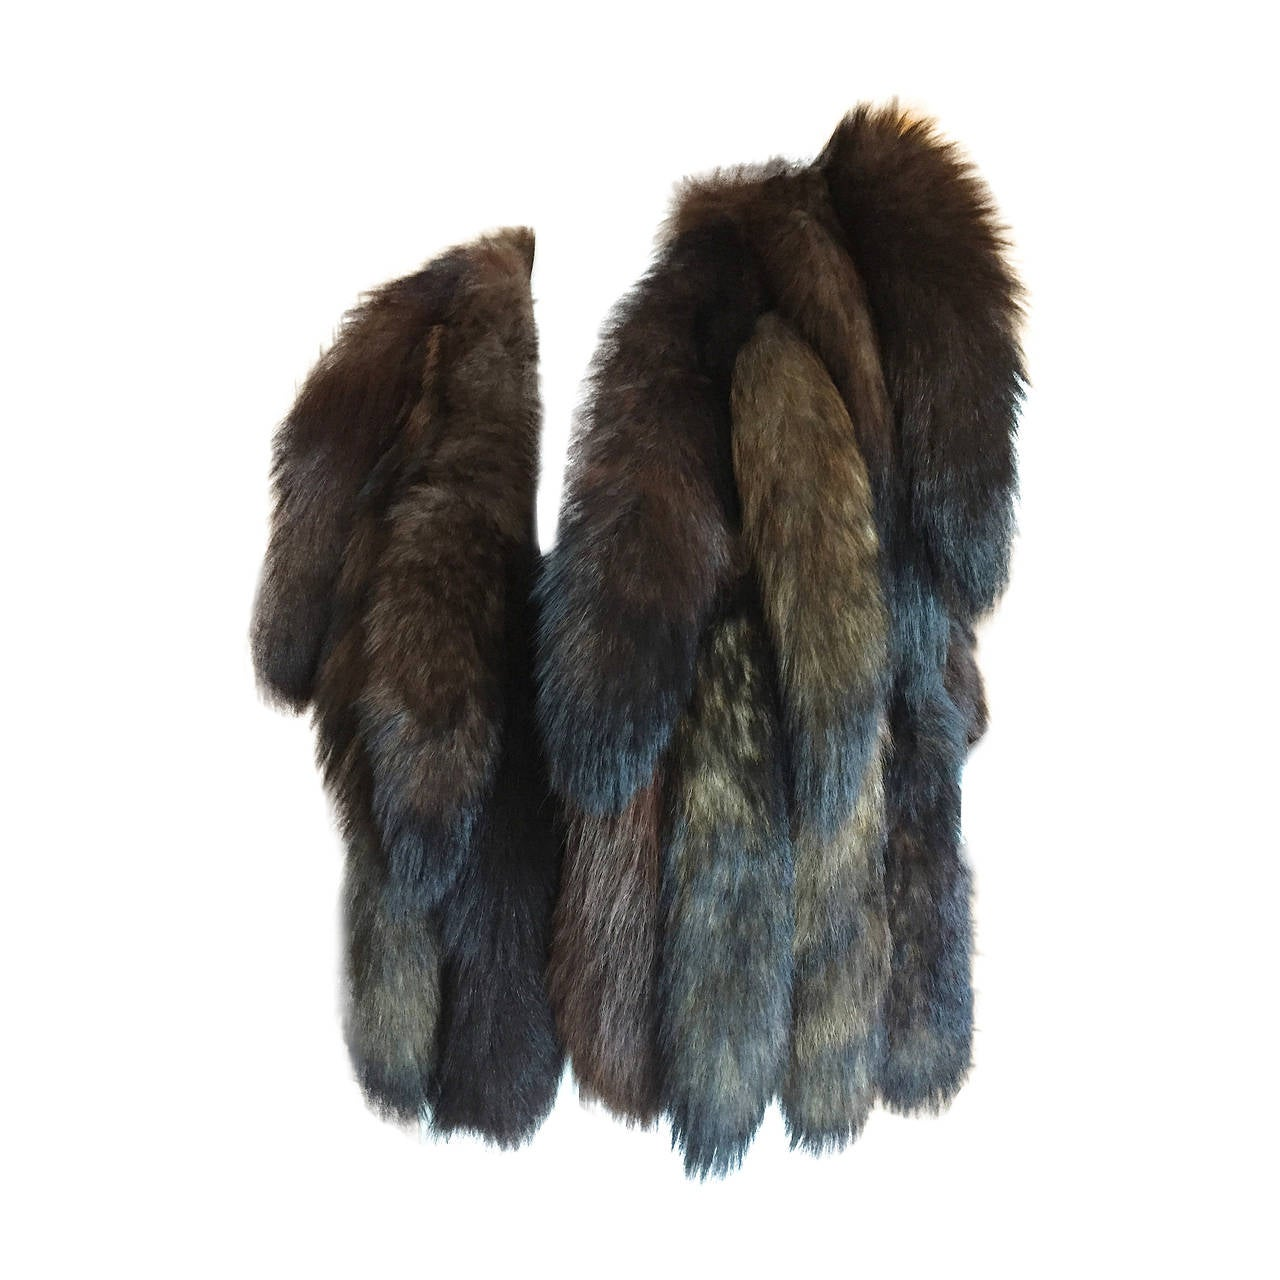 Giorgio Bevery HIlls Boho Fox Tail Boho Vest For Sale